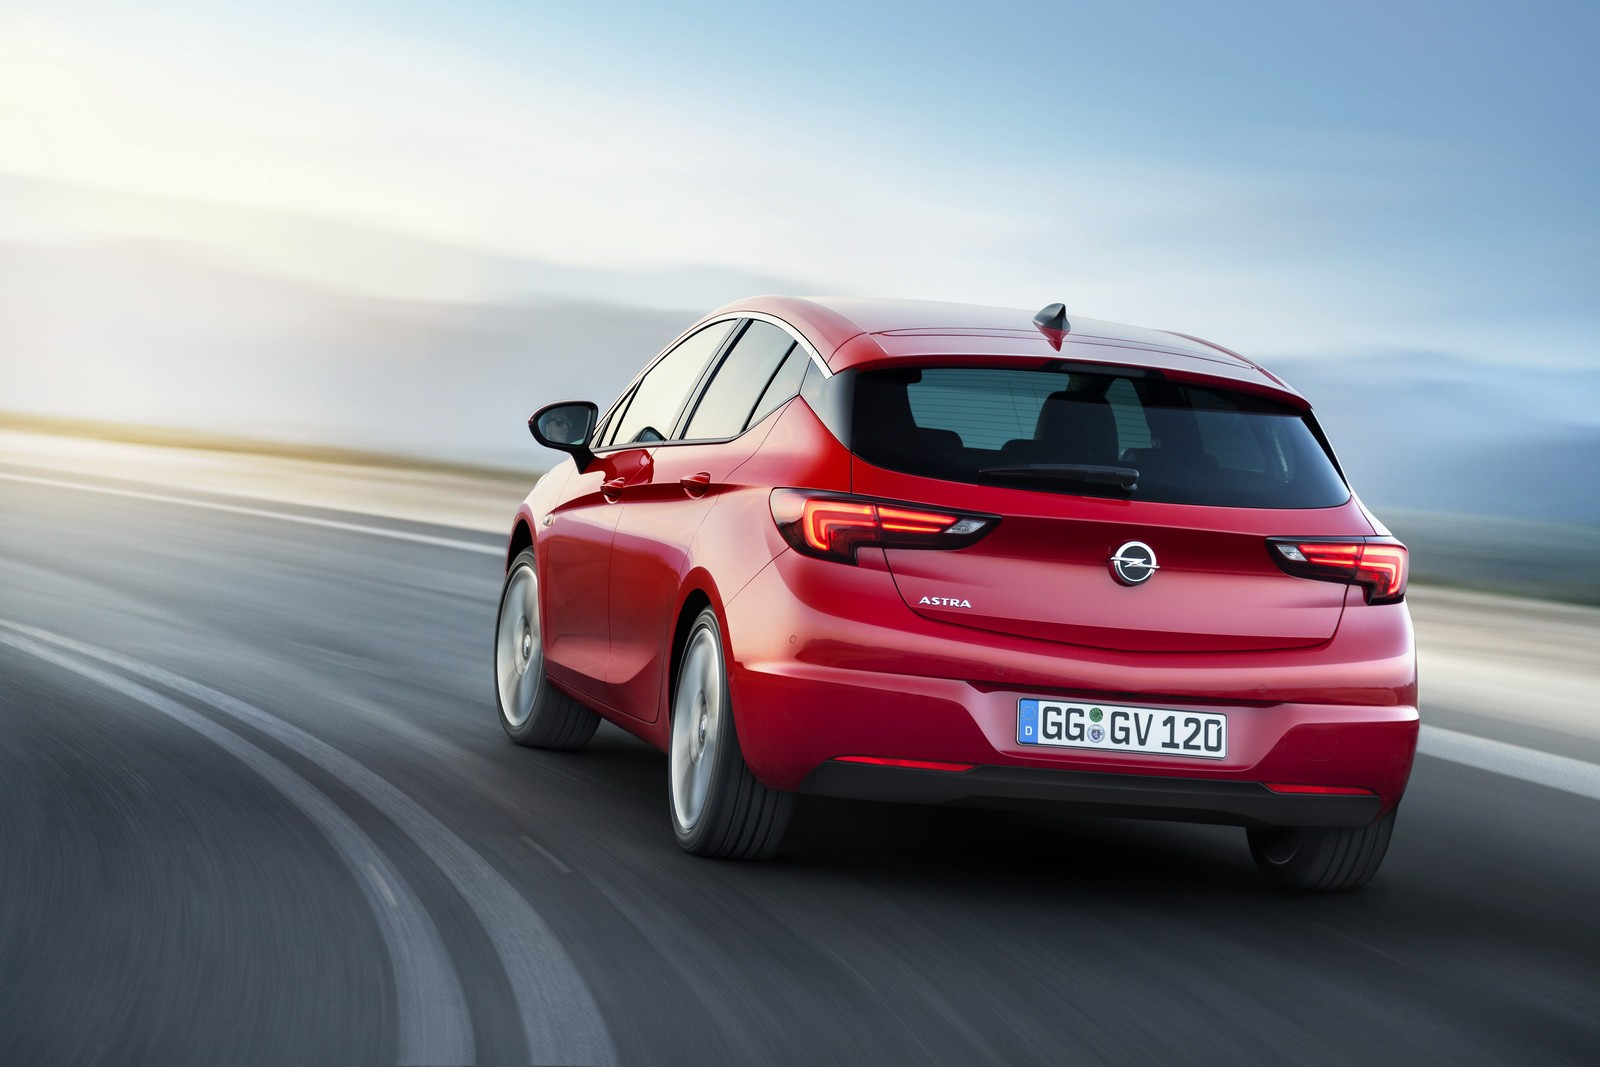 2017 opel astra opc will use a smaller 1.6-liter turbo engine